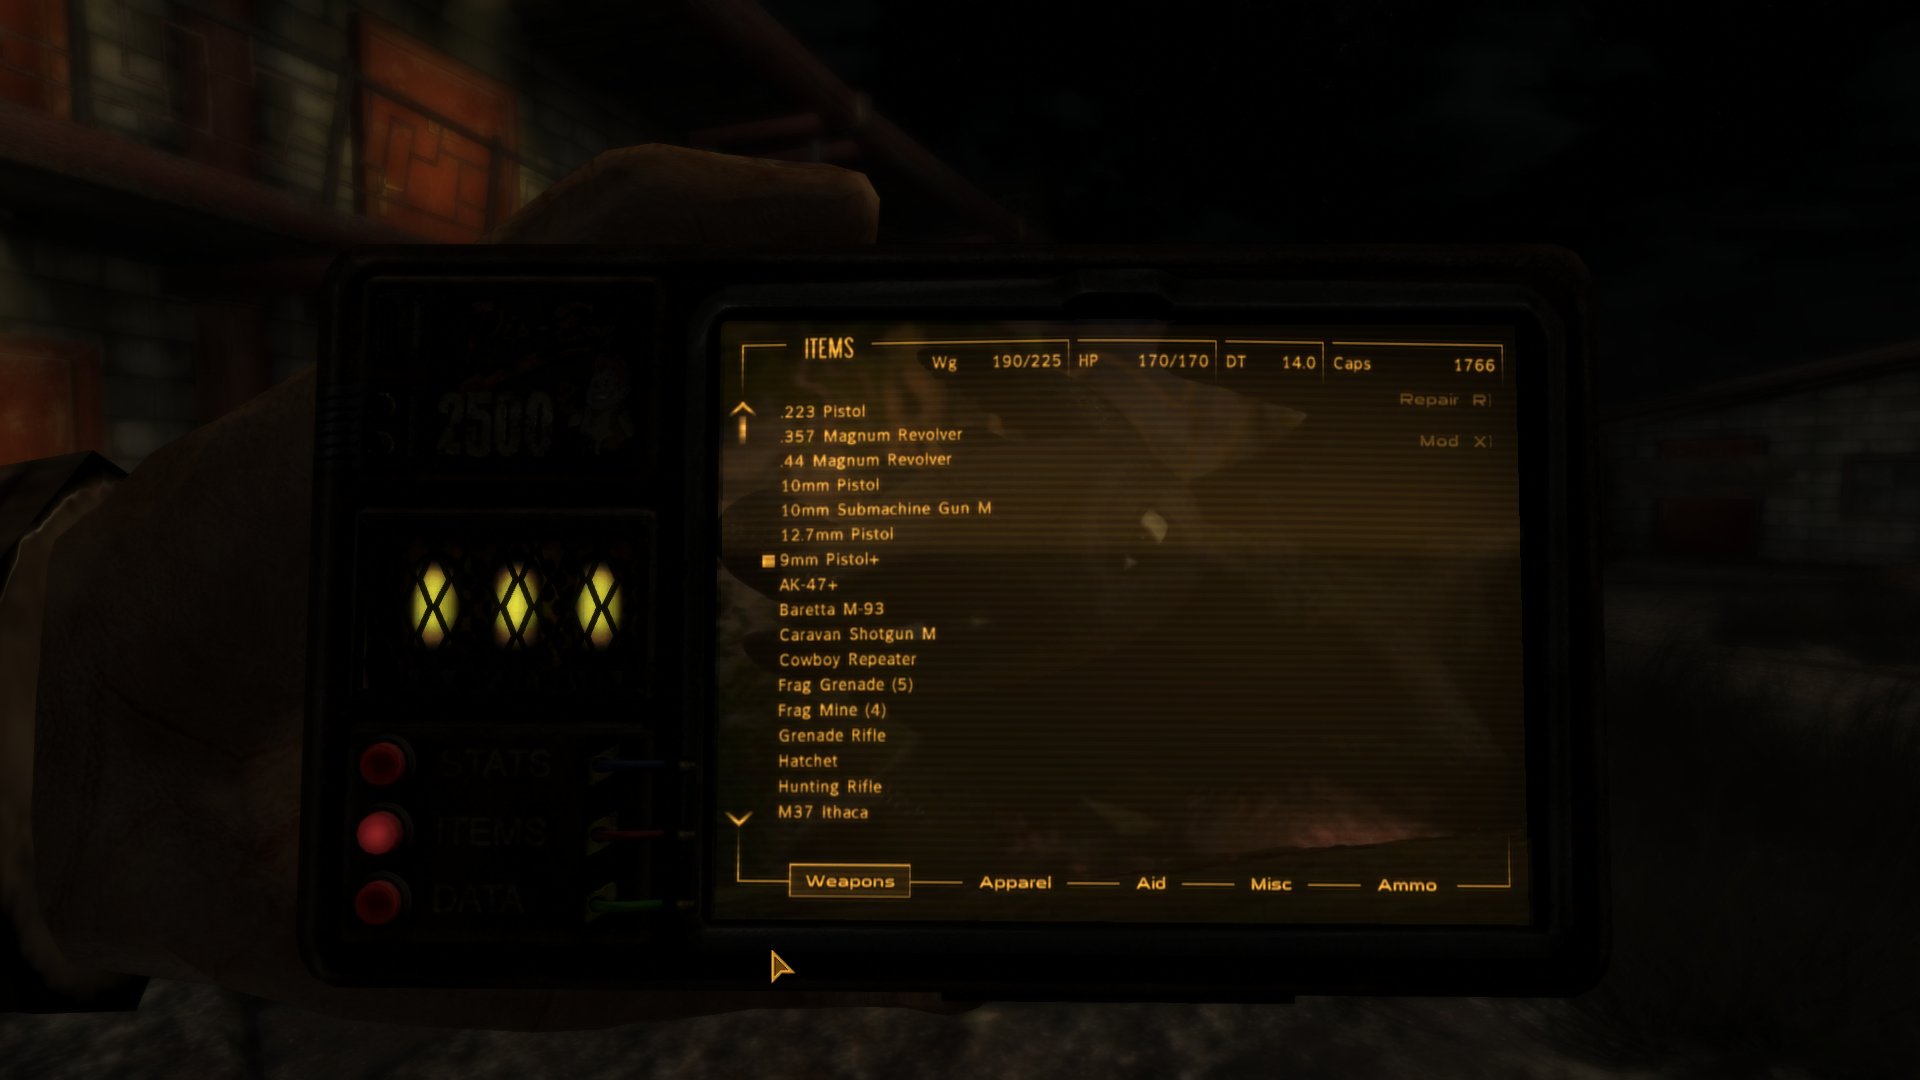 Pip-Boy 25 A - The Arm Mounted Pipboy 25 at Fallout